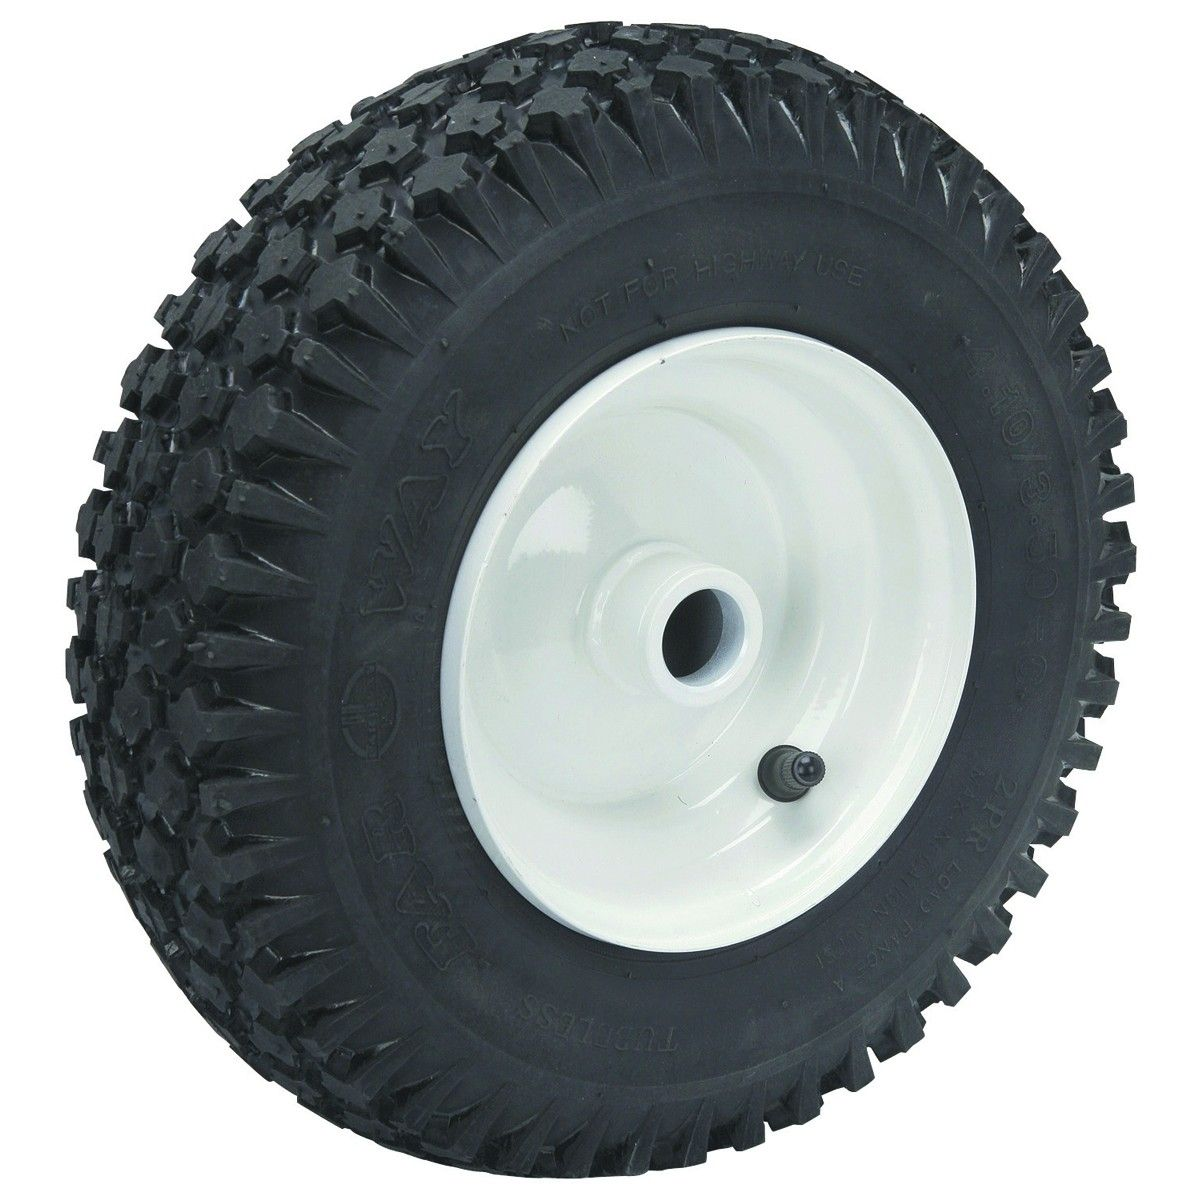 "13"" Replacement Tire with 6"" Hub for Trailer Dolly"